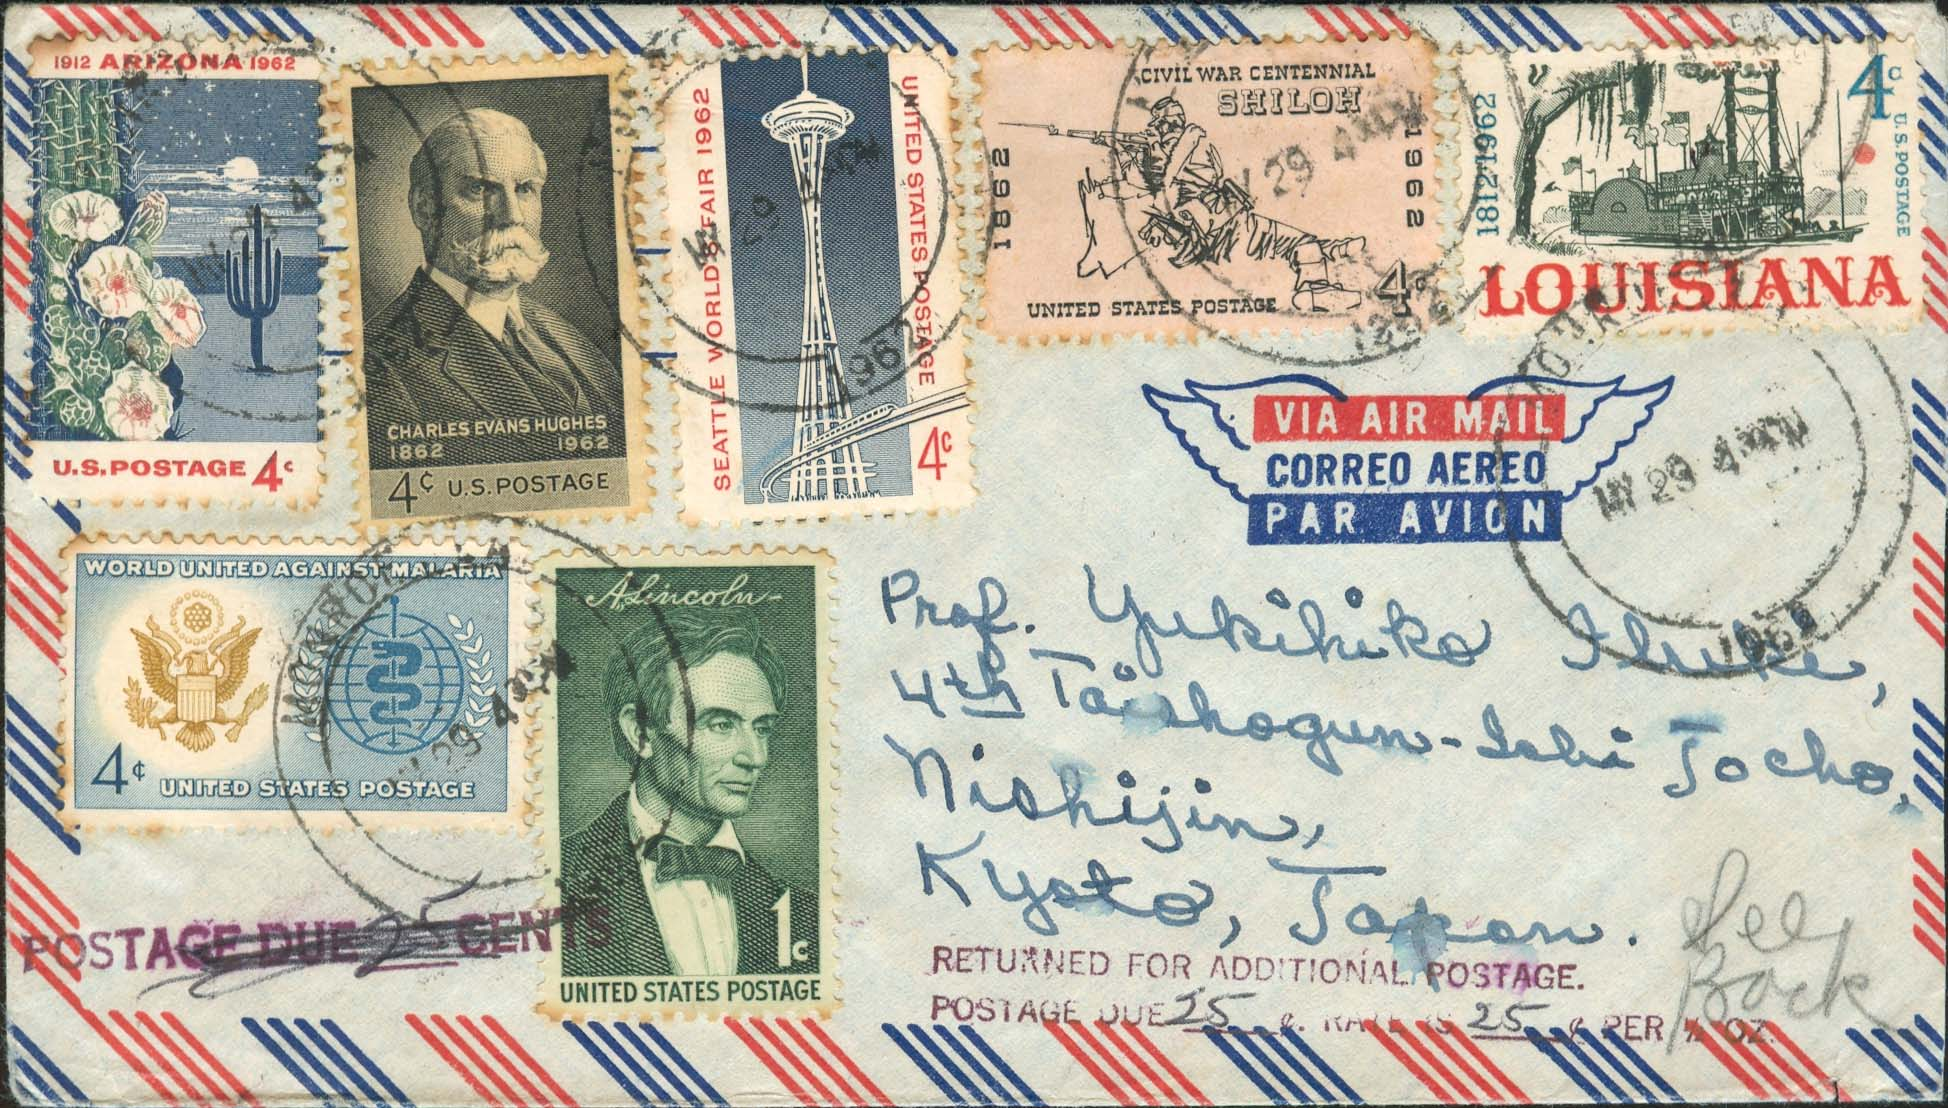 1962, May 29th, 4:30 PM Monroe, LA to Japan. <br />Cover weighed 1 oz so 25¢ more was required and returned for more postage. 25 ¢ added on the back June 2nd, 1962. - Front